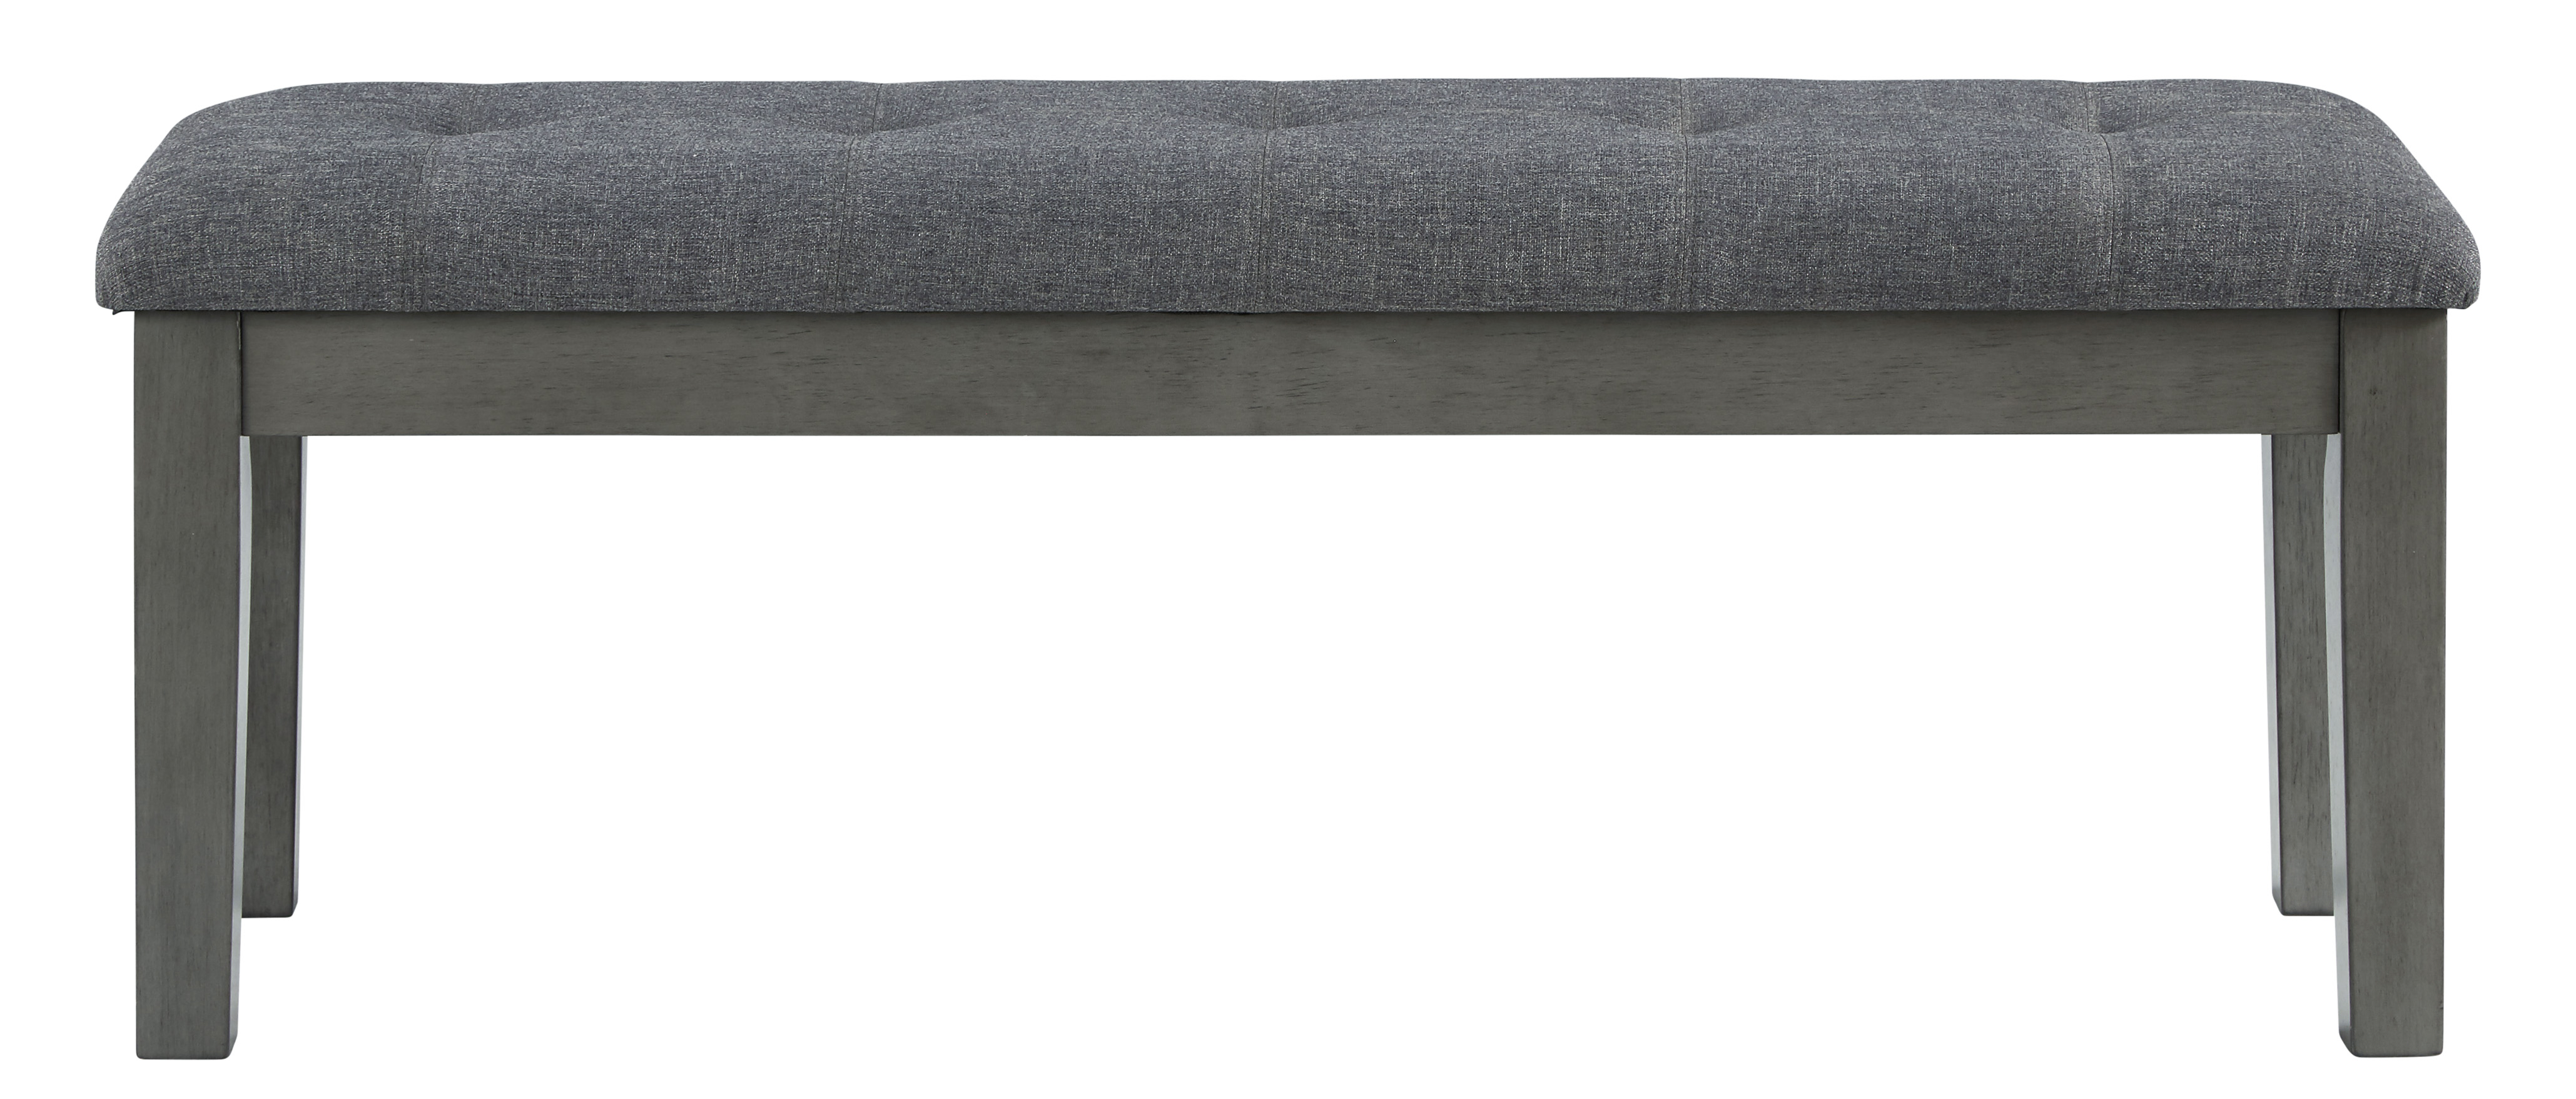 Hallanden Upholstered Benches by Signature Design by Ashley at Fine Home Furnishings